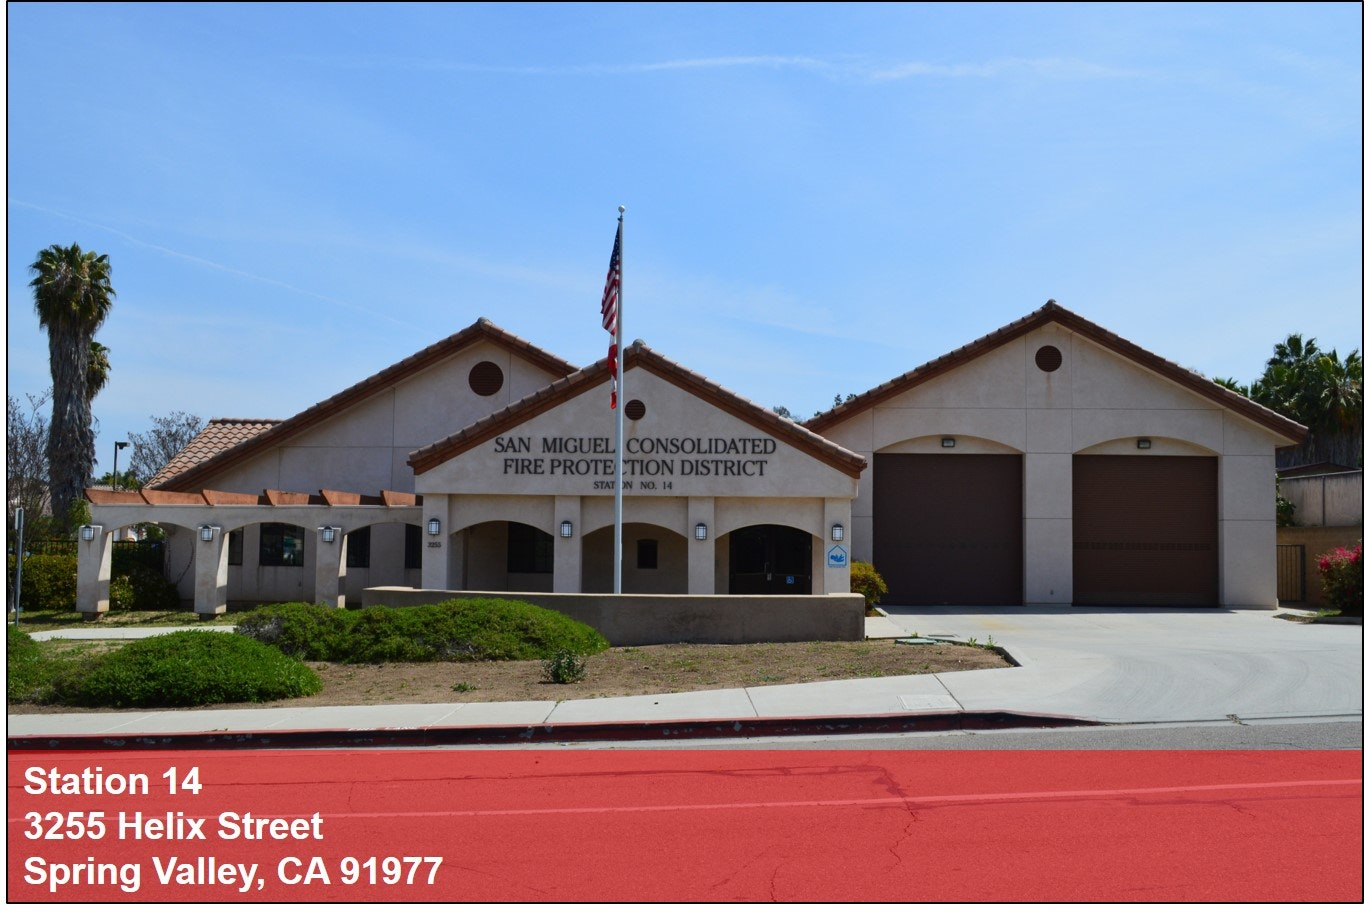 Street view of Station 14